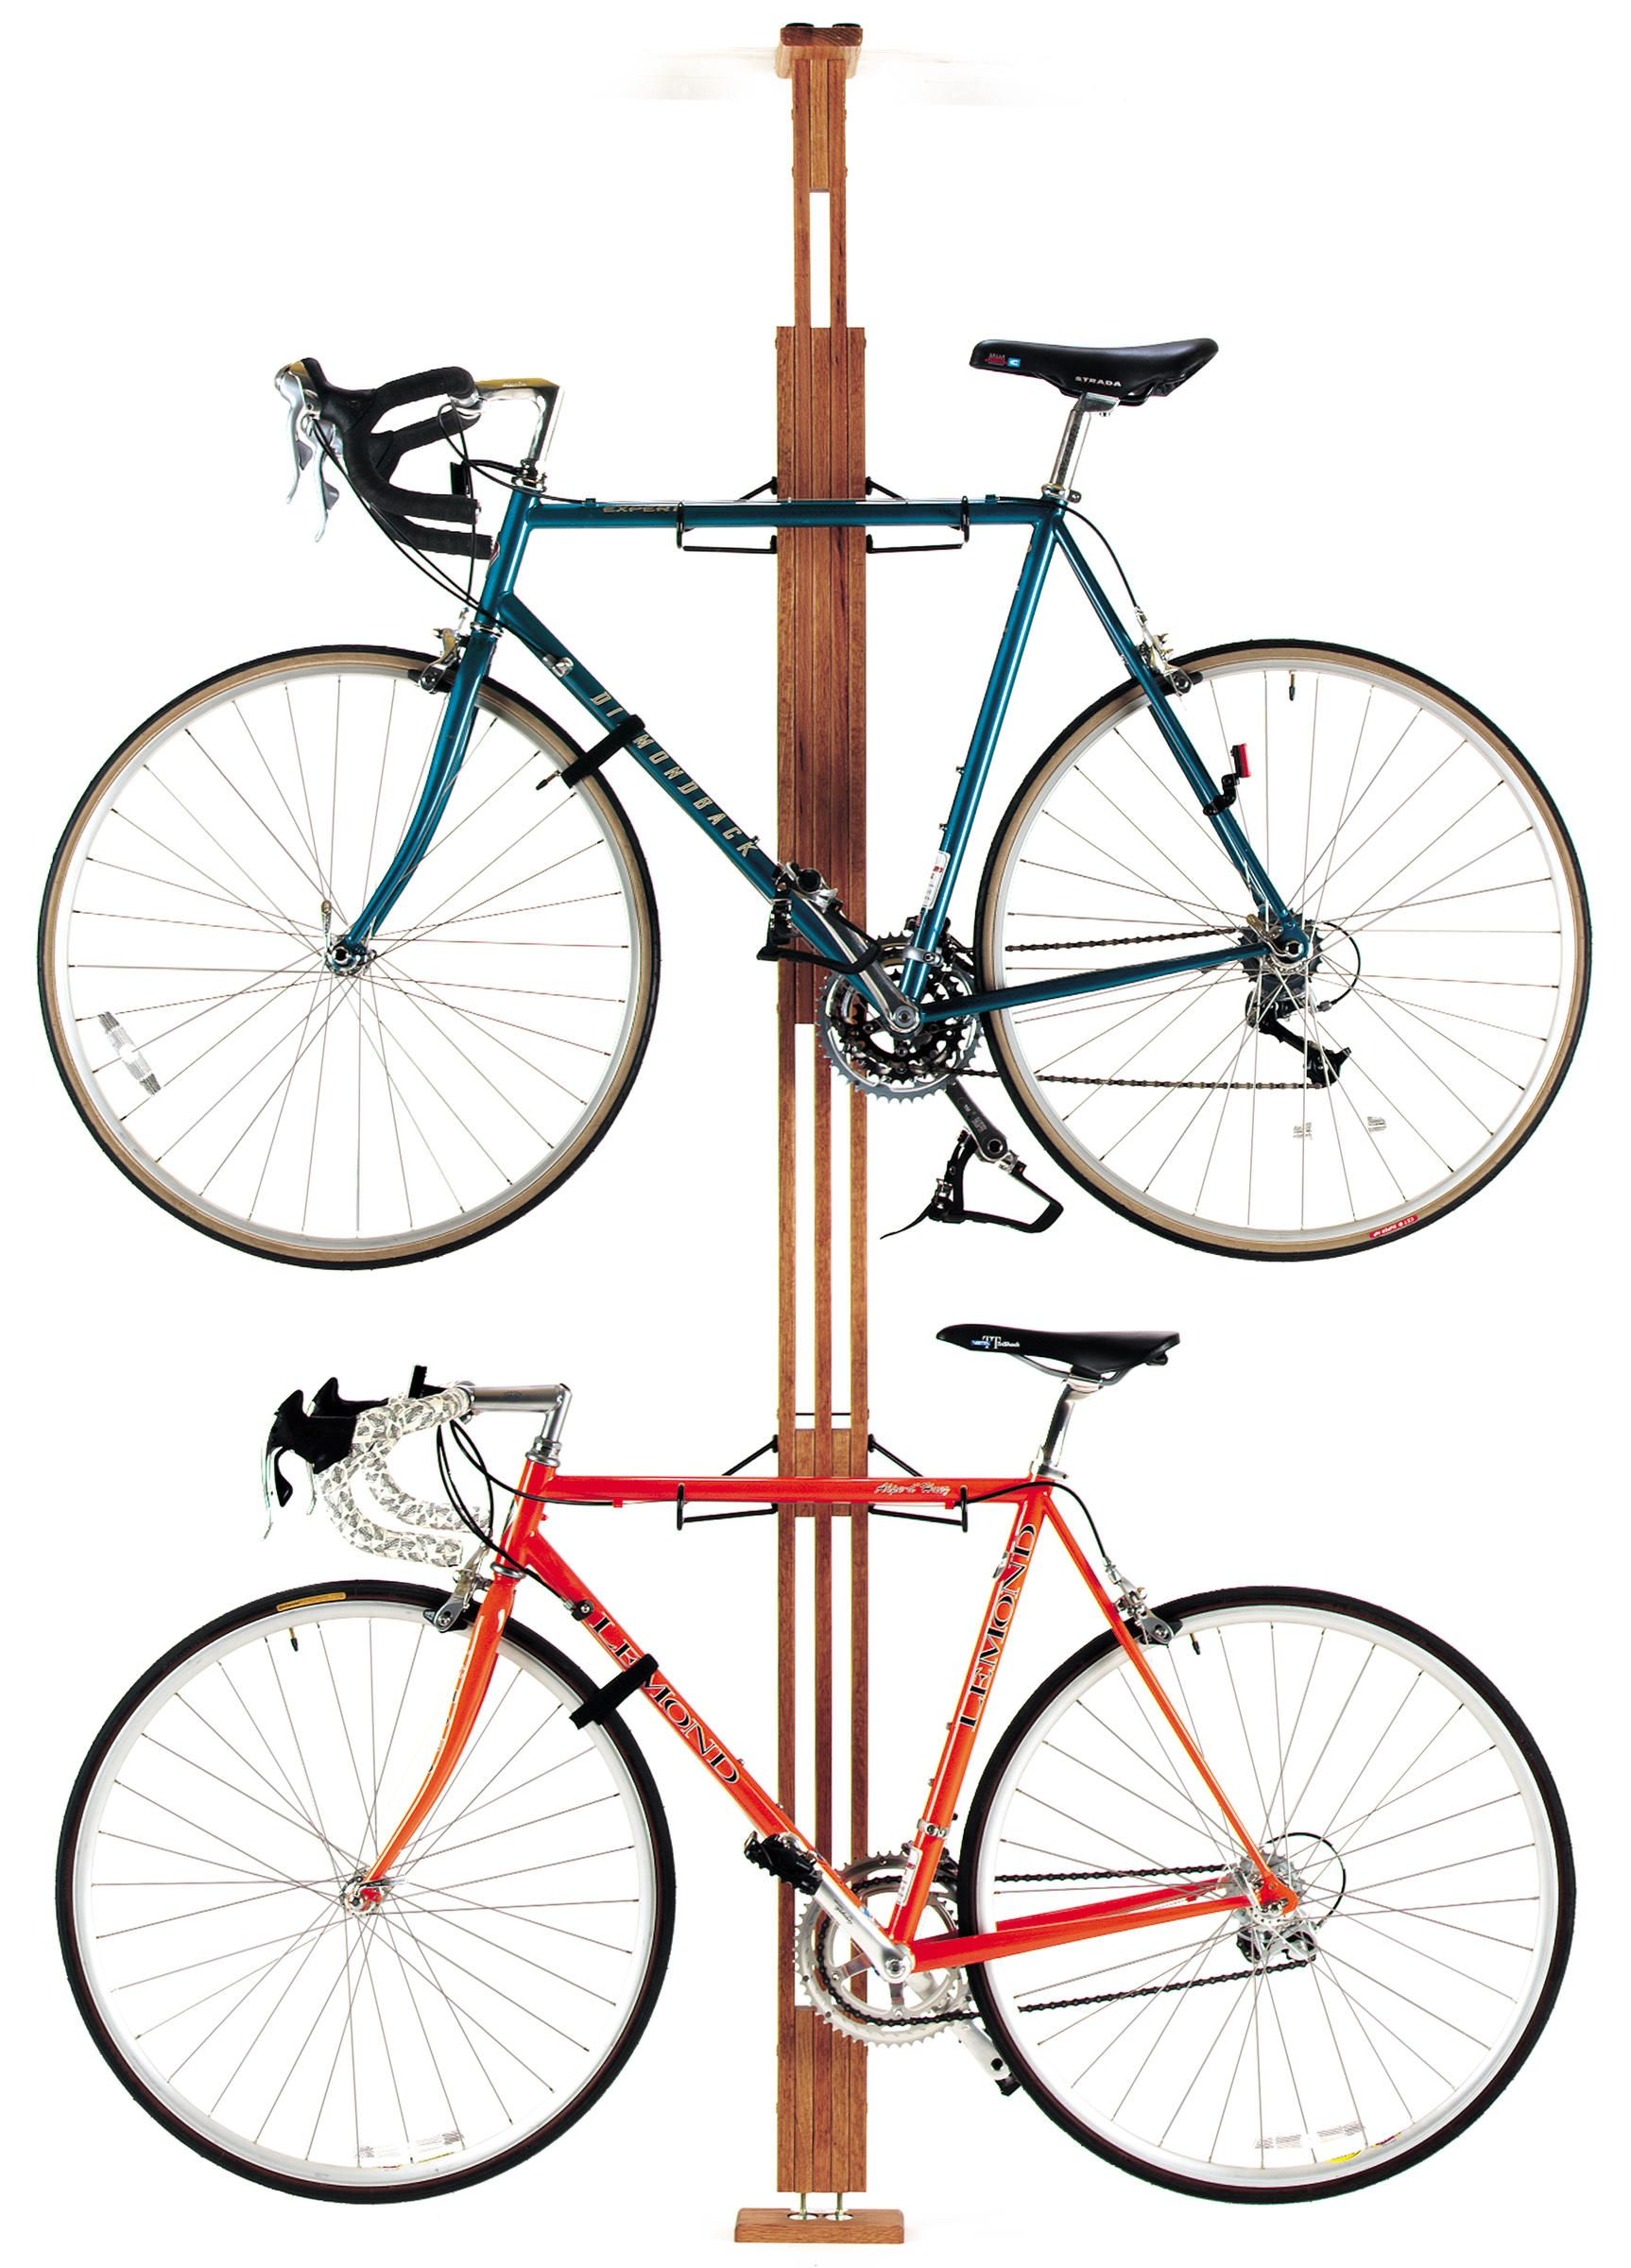 storage smsender to oakrak rack tulum ceilings co up floor bike ceiling racks gear